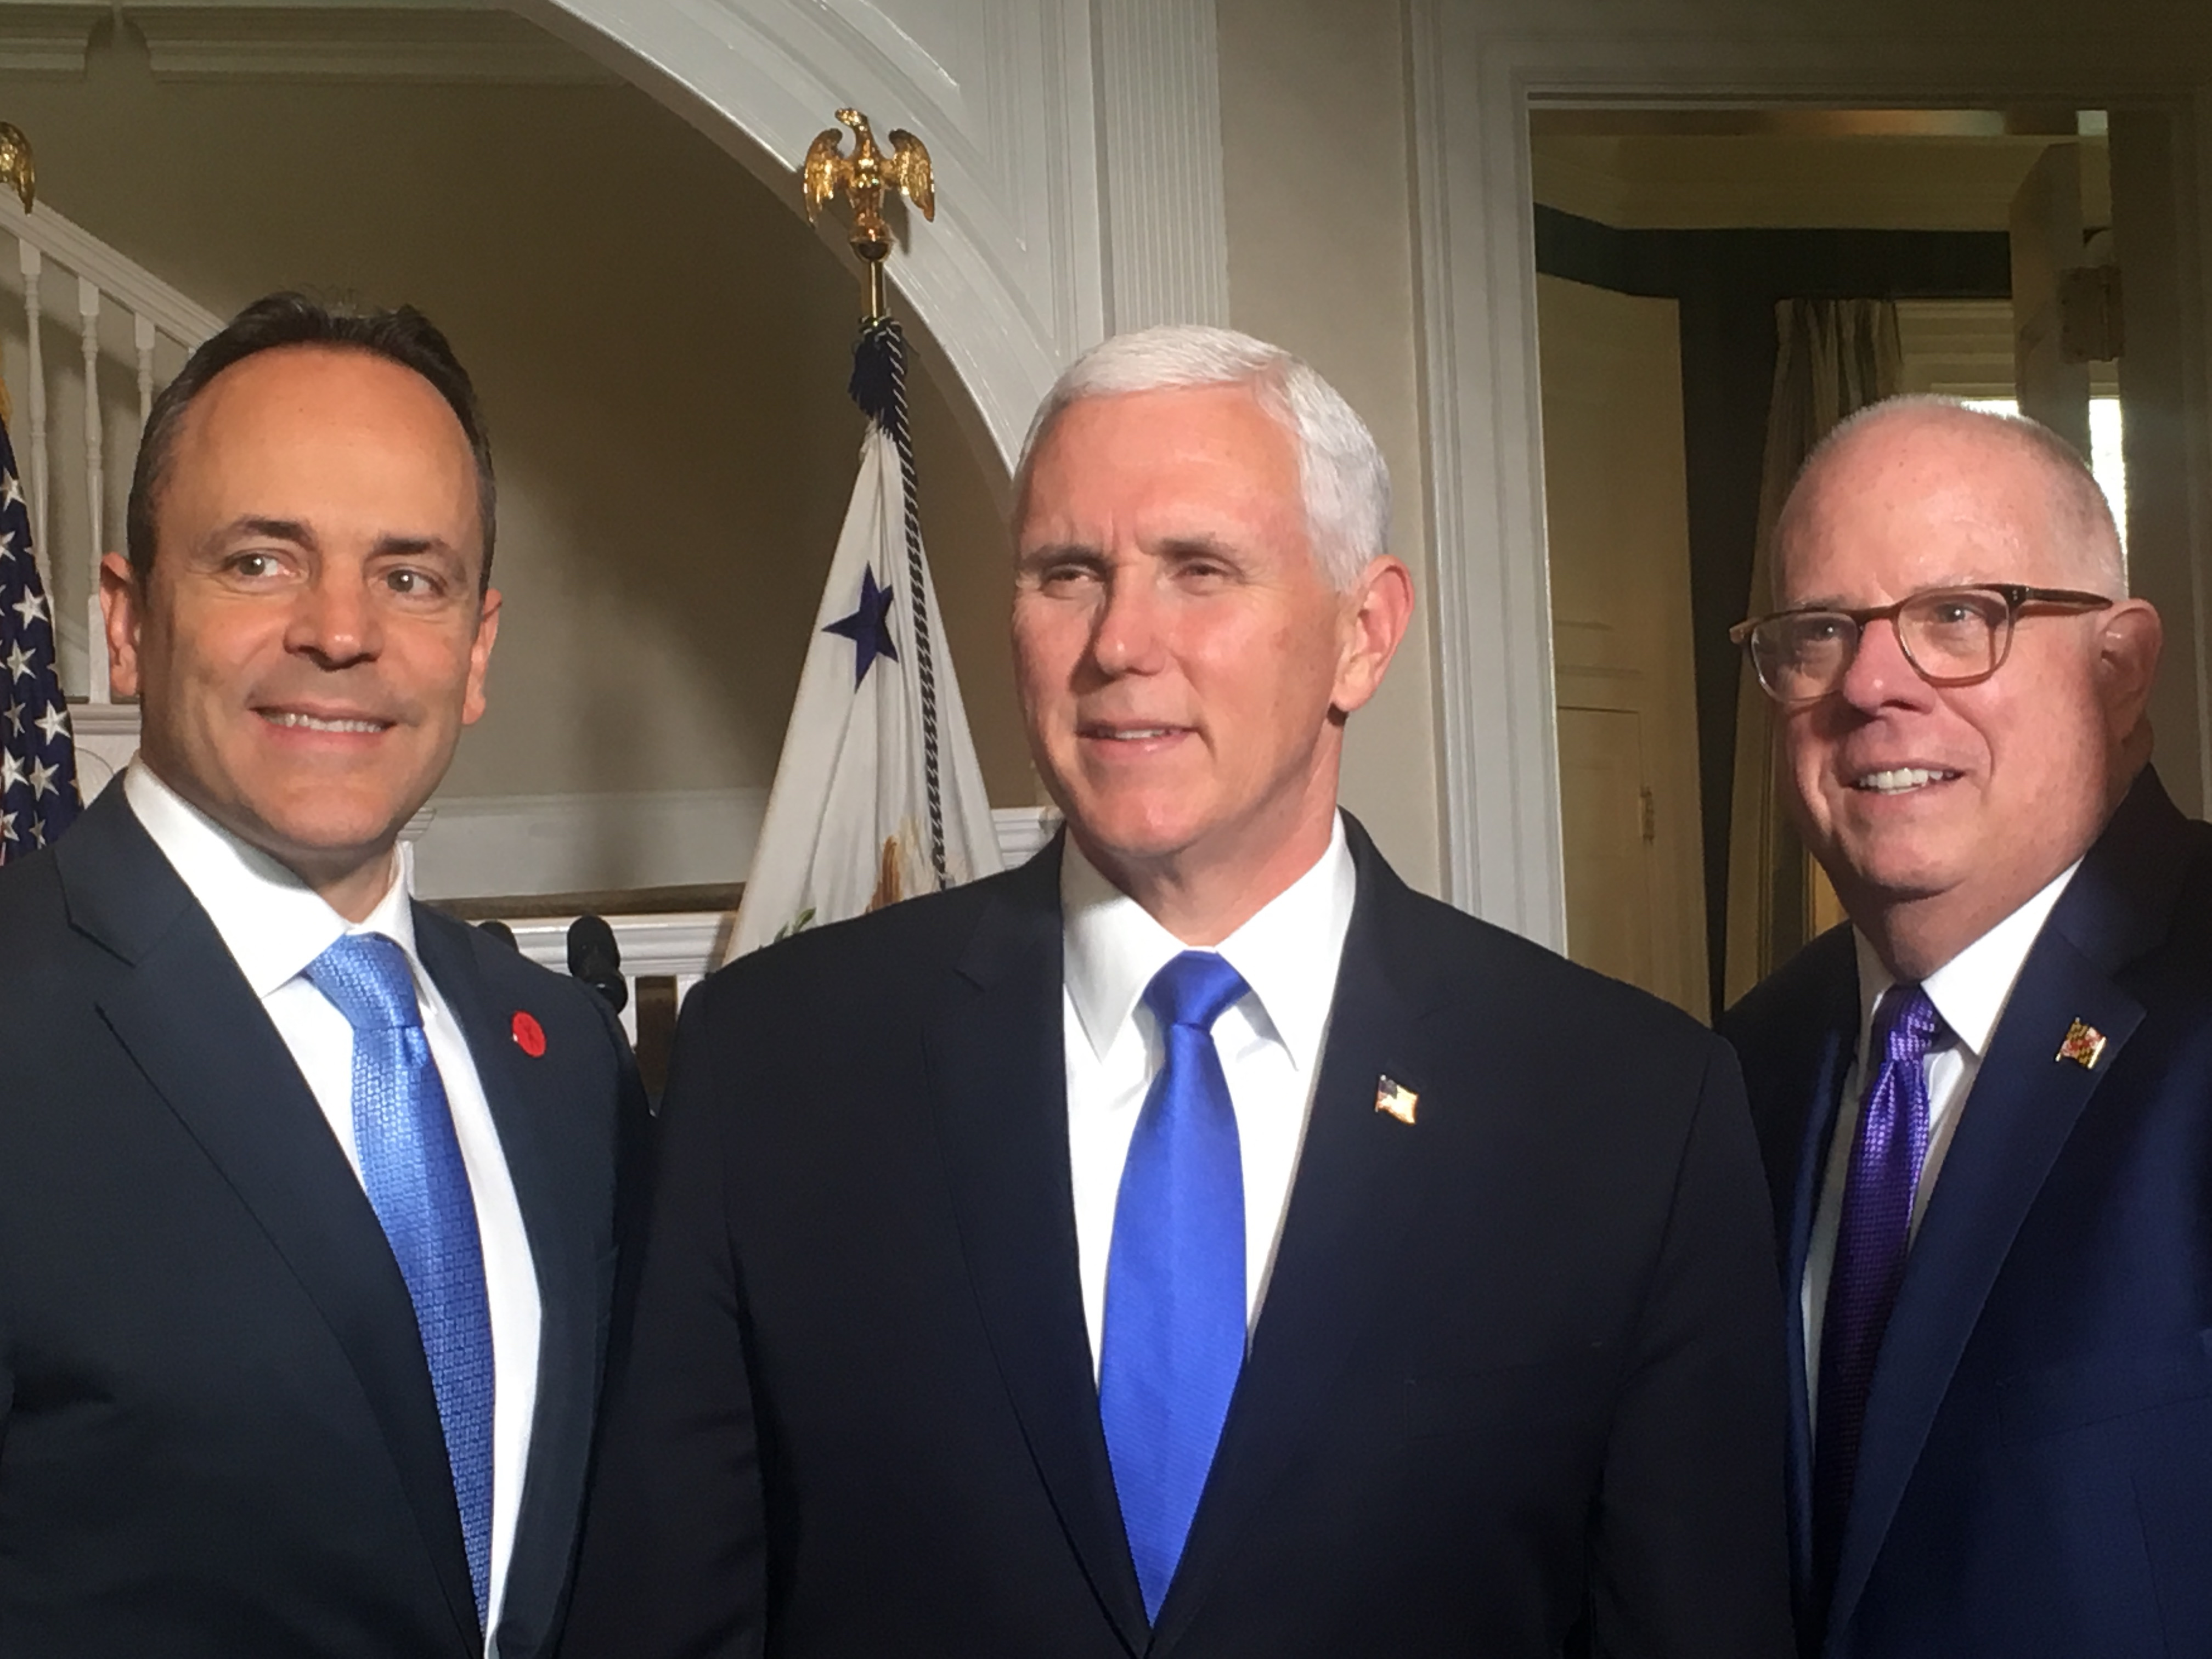 VP Pence posing with Hogan and Kentucky Gov. Matt Bevin